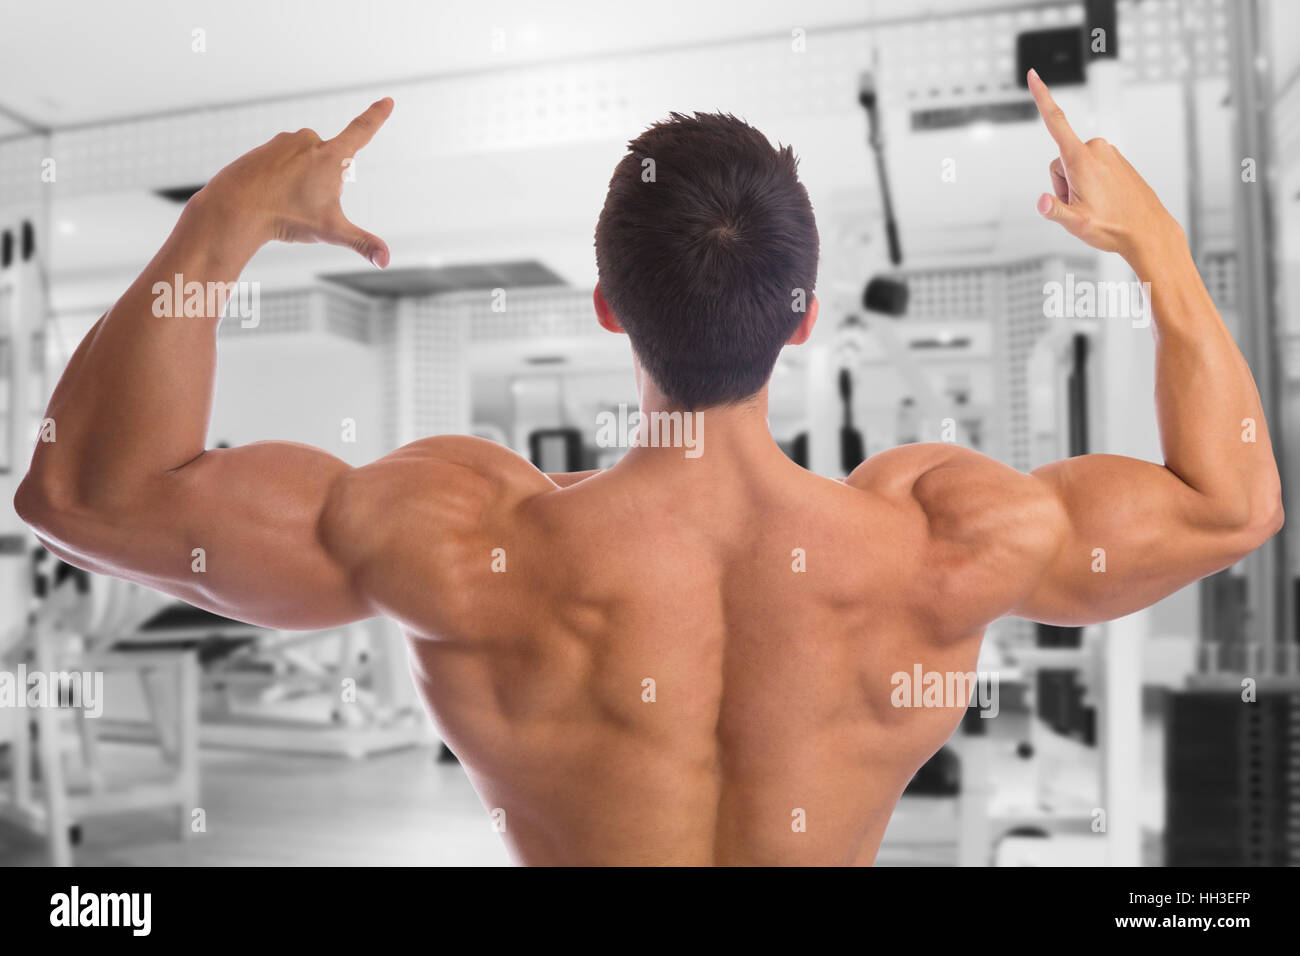 Bodybuilder bodybuilding muscles back gym strong muscular fitness studio - Stock Image